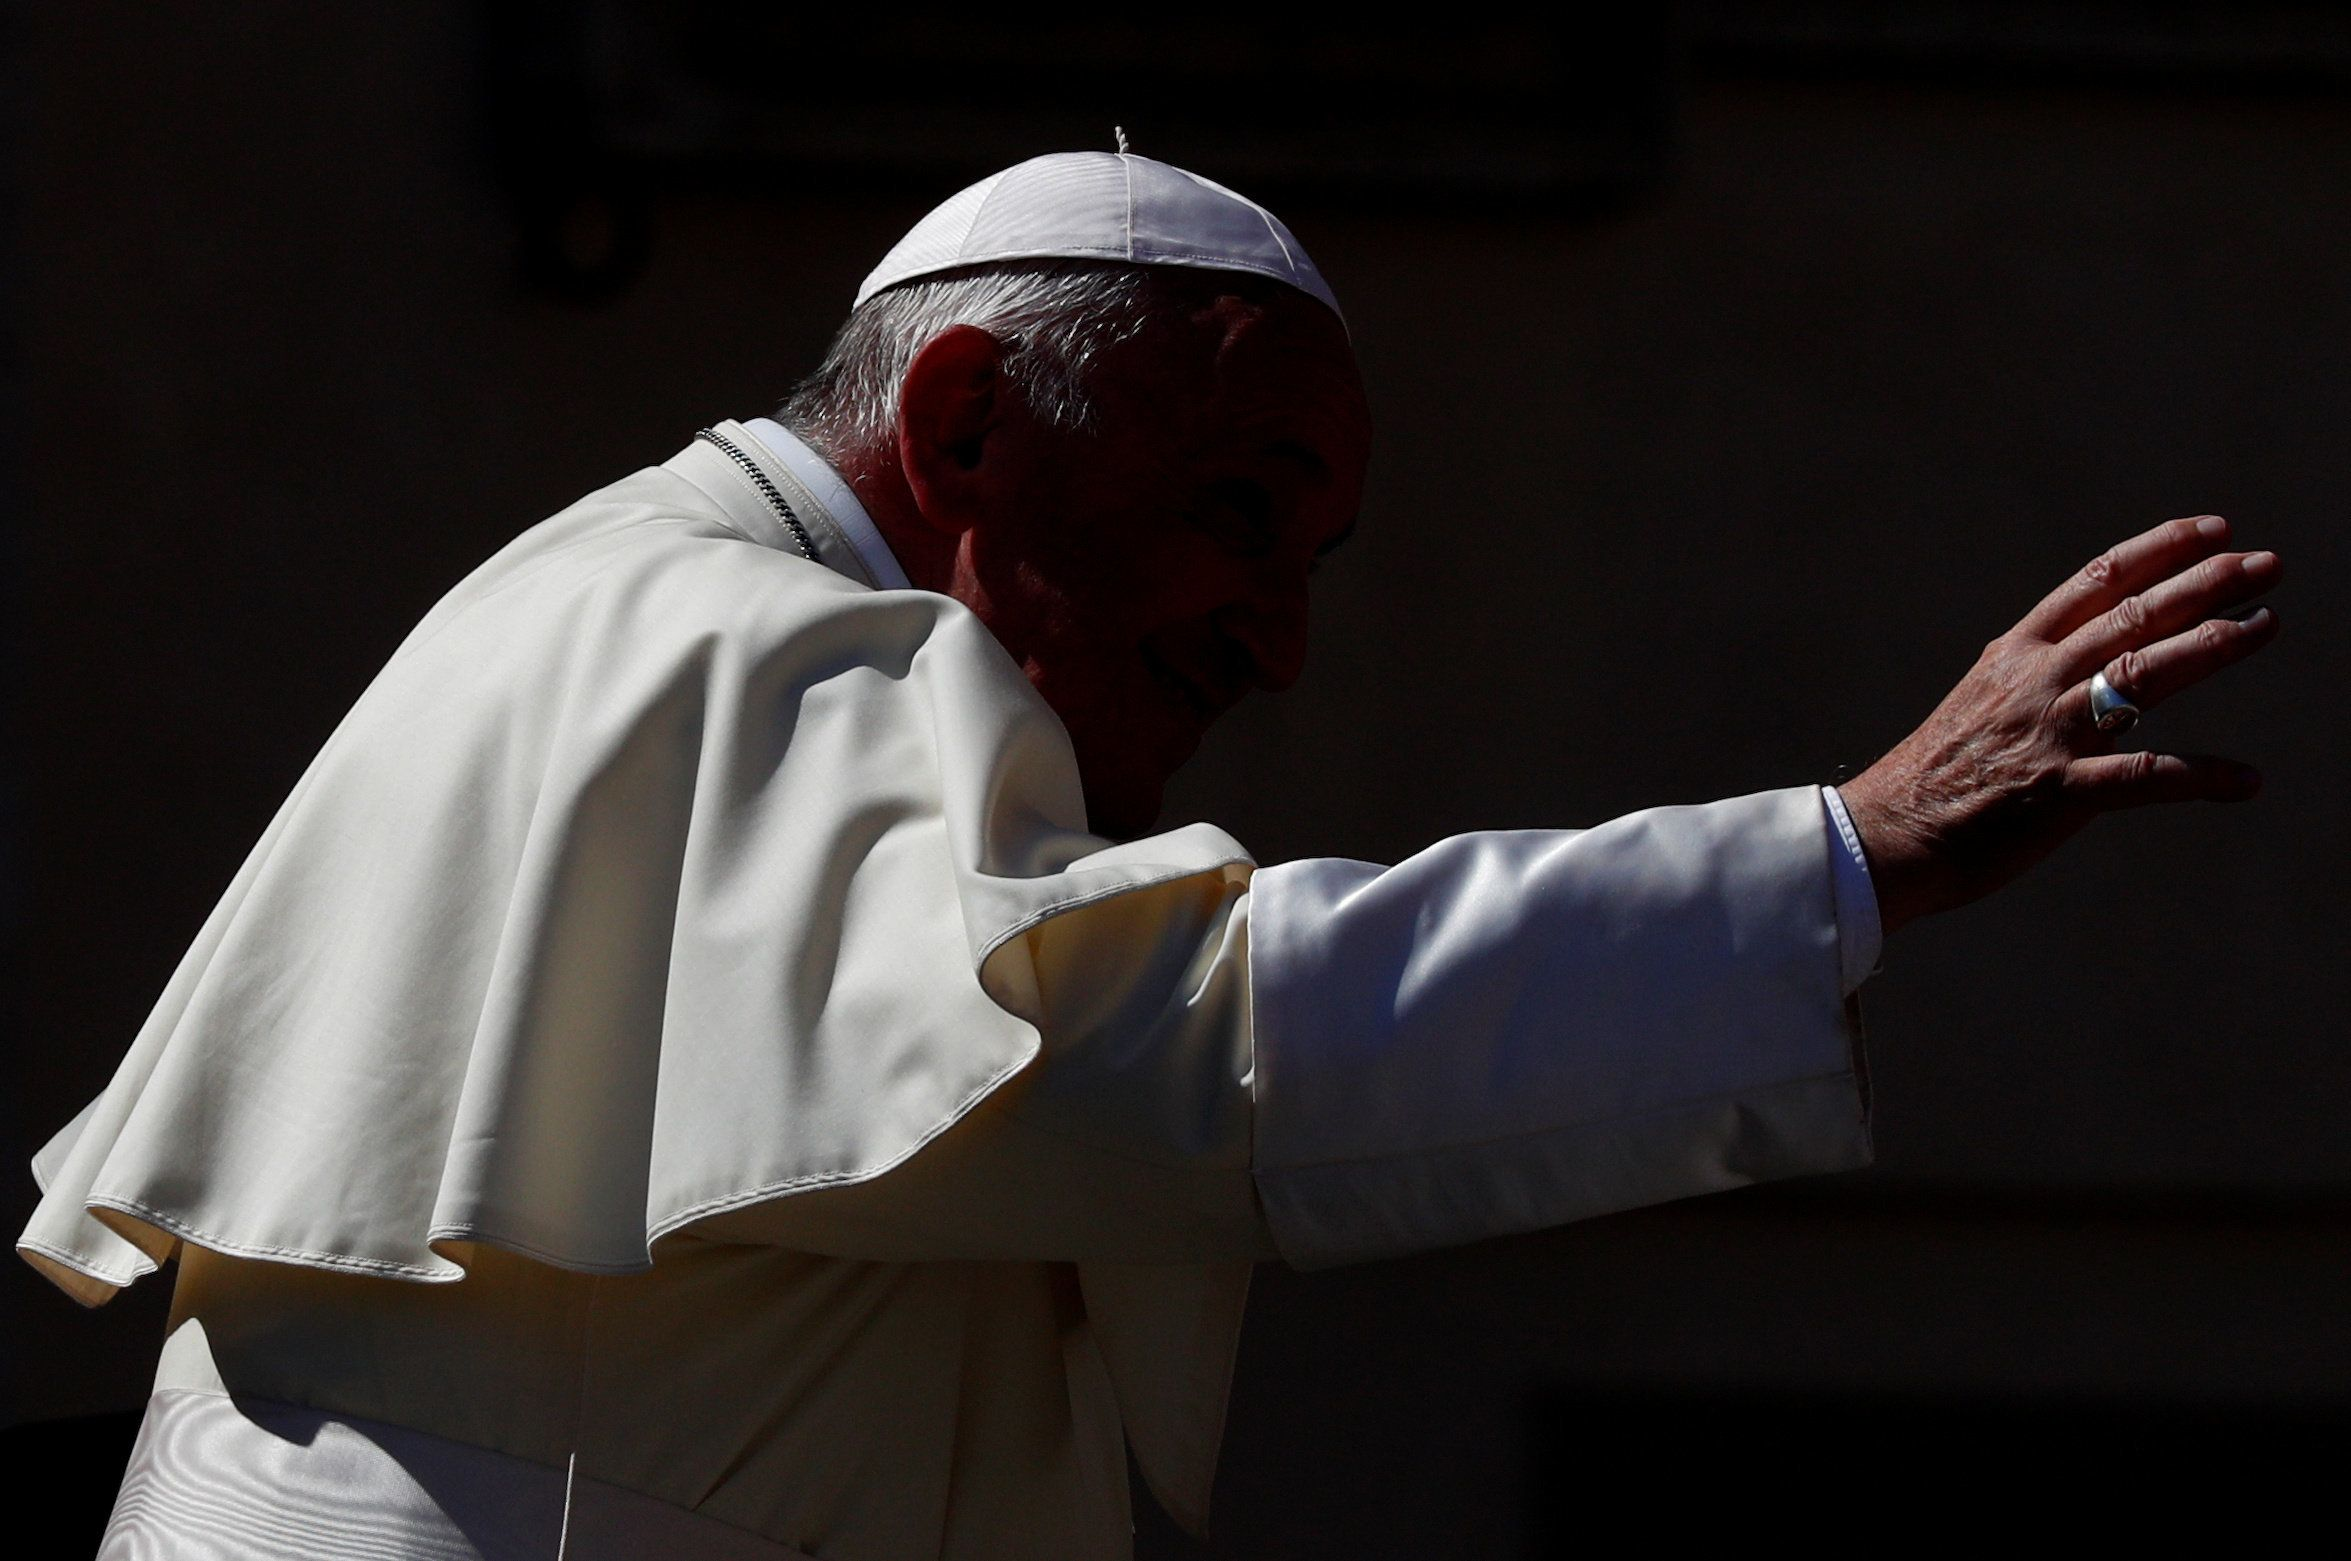 Pope Francis waves as he leaves after the Wednesday general audience in Saint Peter's square at the Vatican, September 5, 2018. REUTERS/Max Rossi